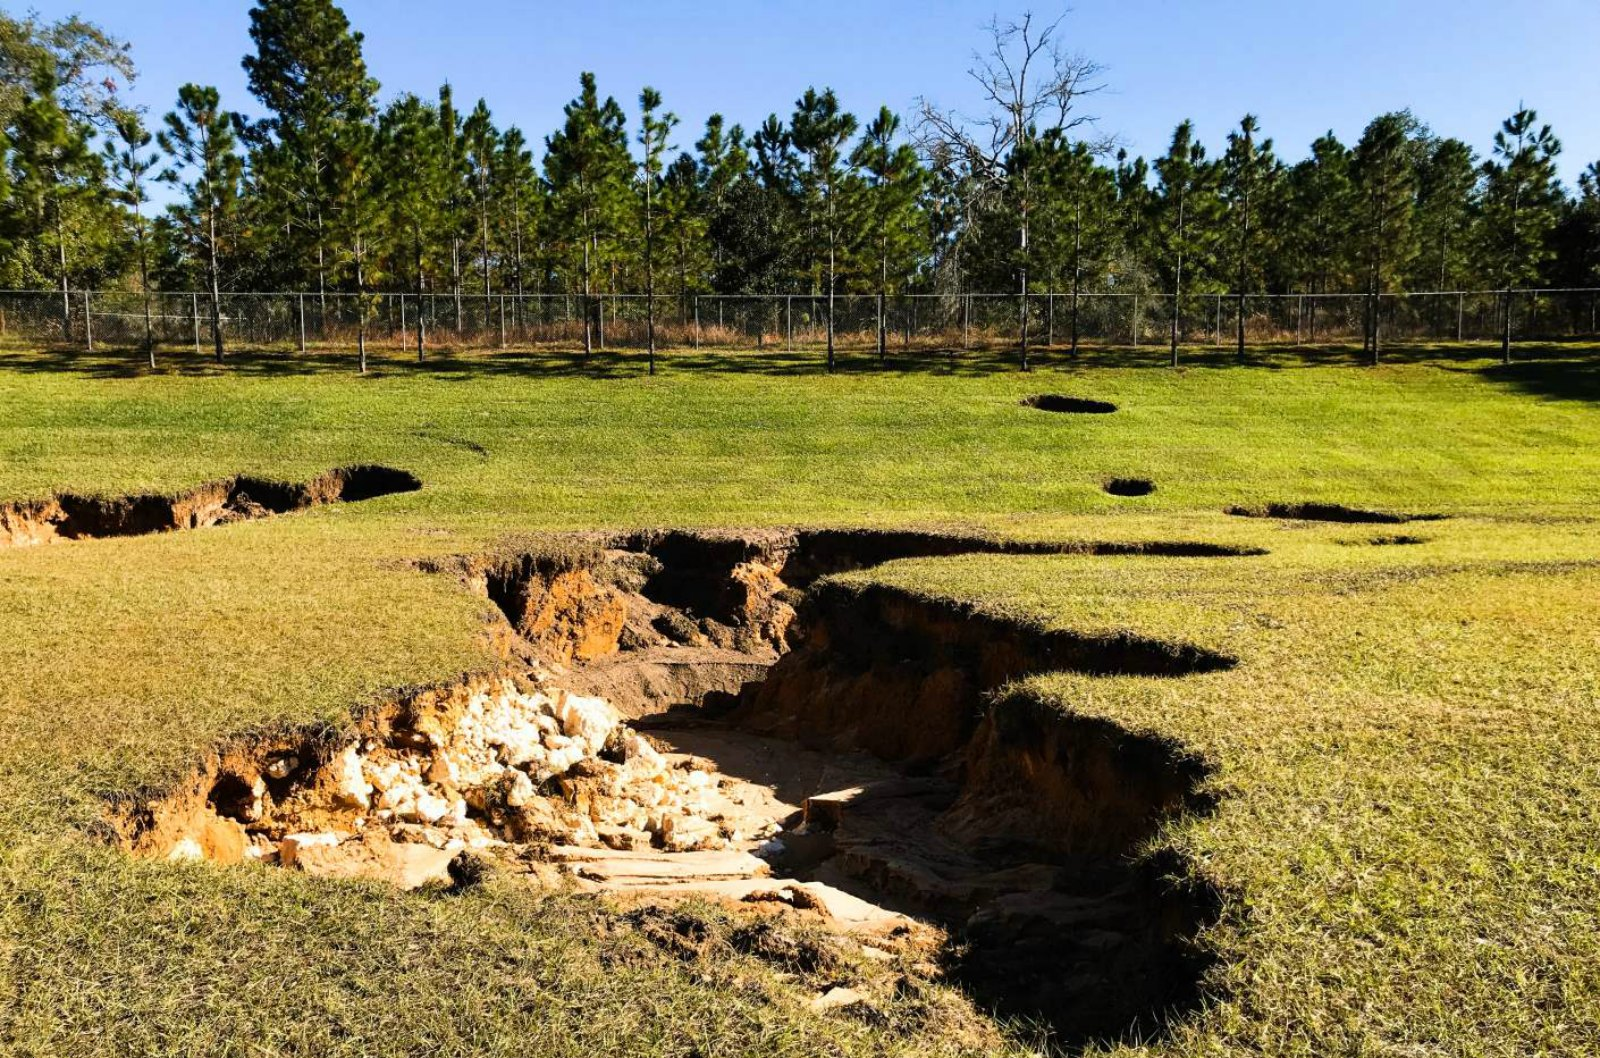 Radar System Sees Through Underground Pipes to Detect Potential for Sinkholes